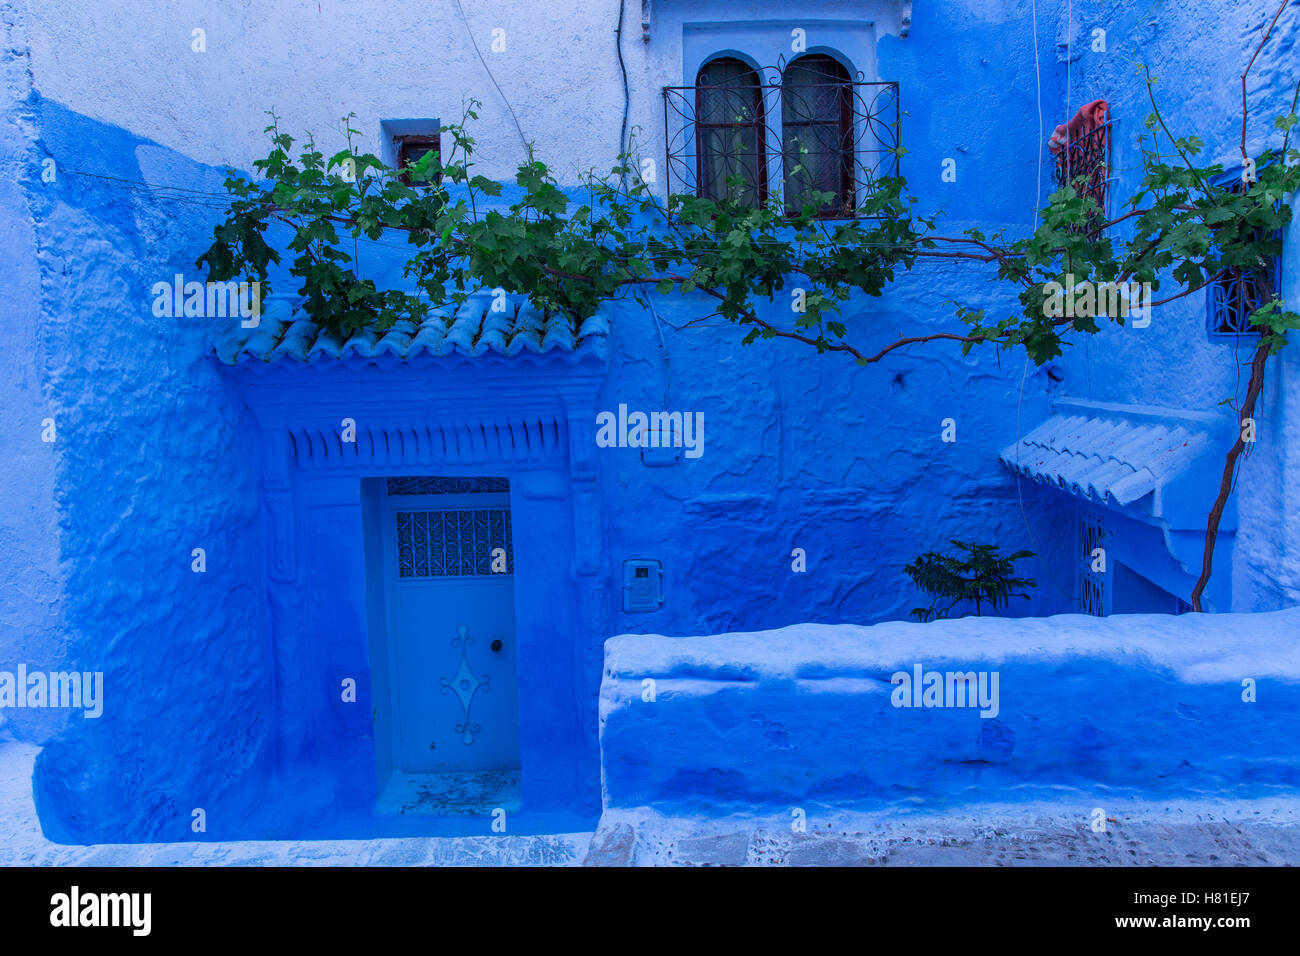 Chefchaouen, Maroc,architecture des bâtiments limewashed indigo Photo Stock